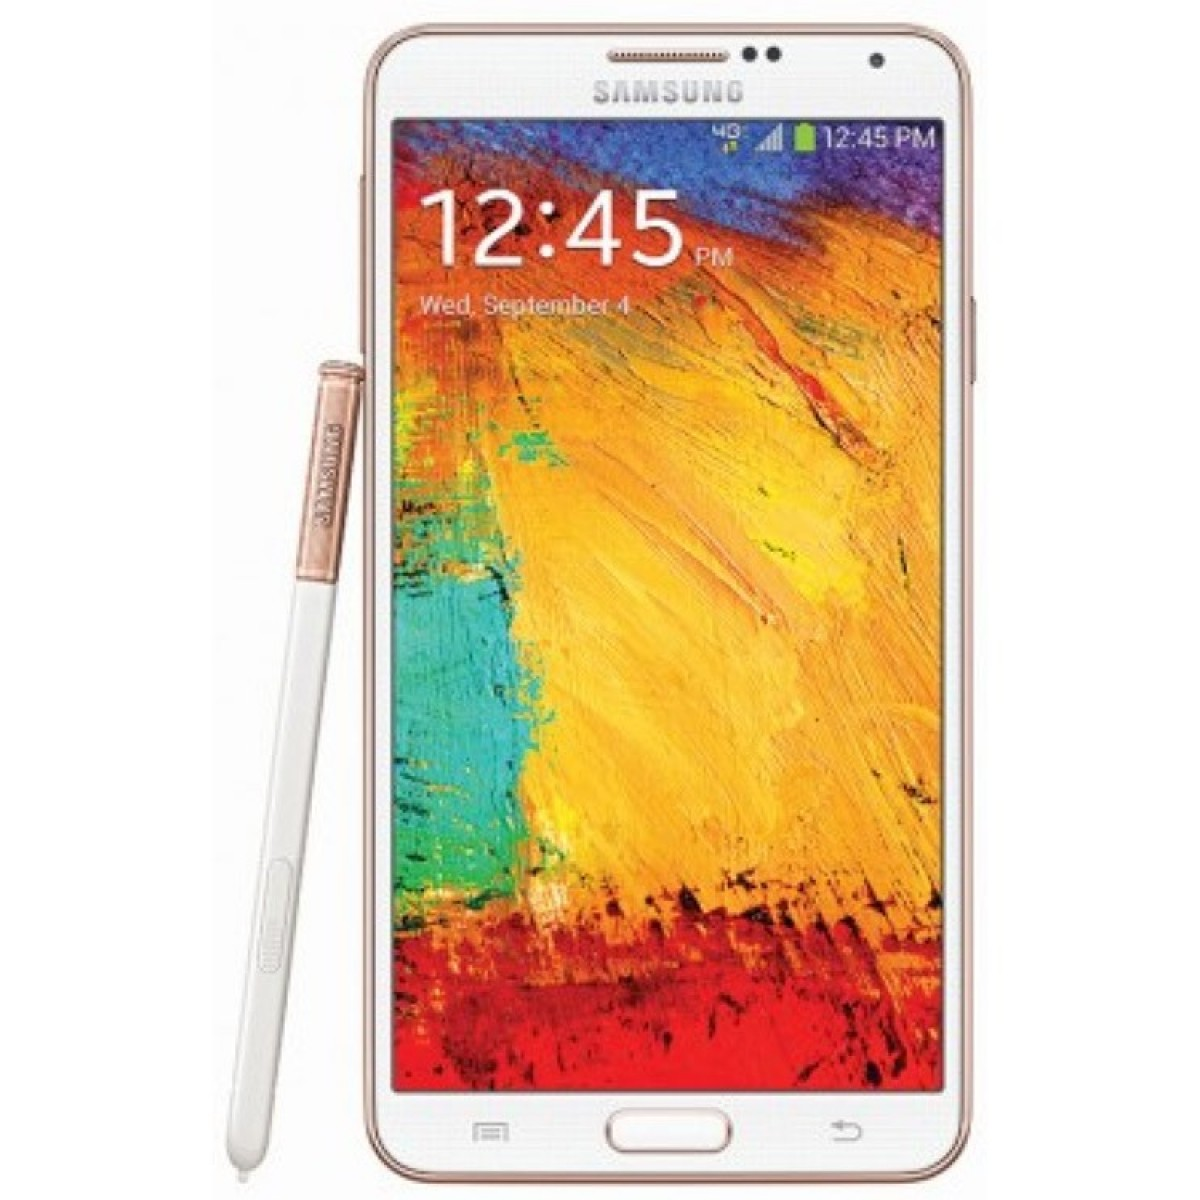 samsung galaxy note 3 n900t 32 gb penta 3g lte new unlocked white intouch wireless intouch. Black Bedroom Furniture Sets. Home Design Ideas